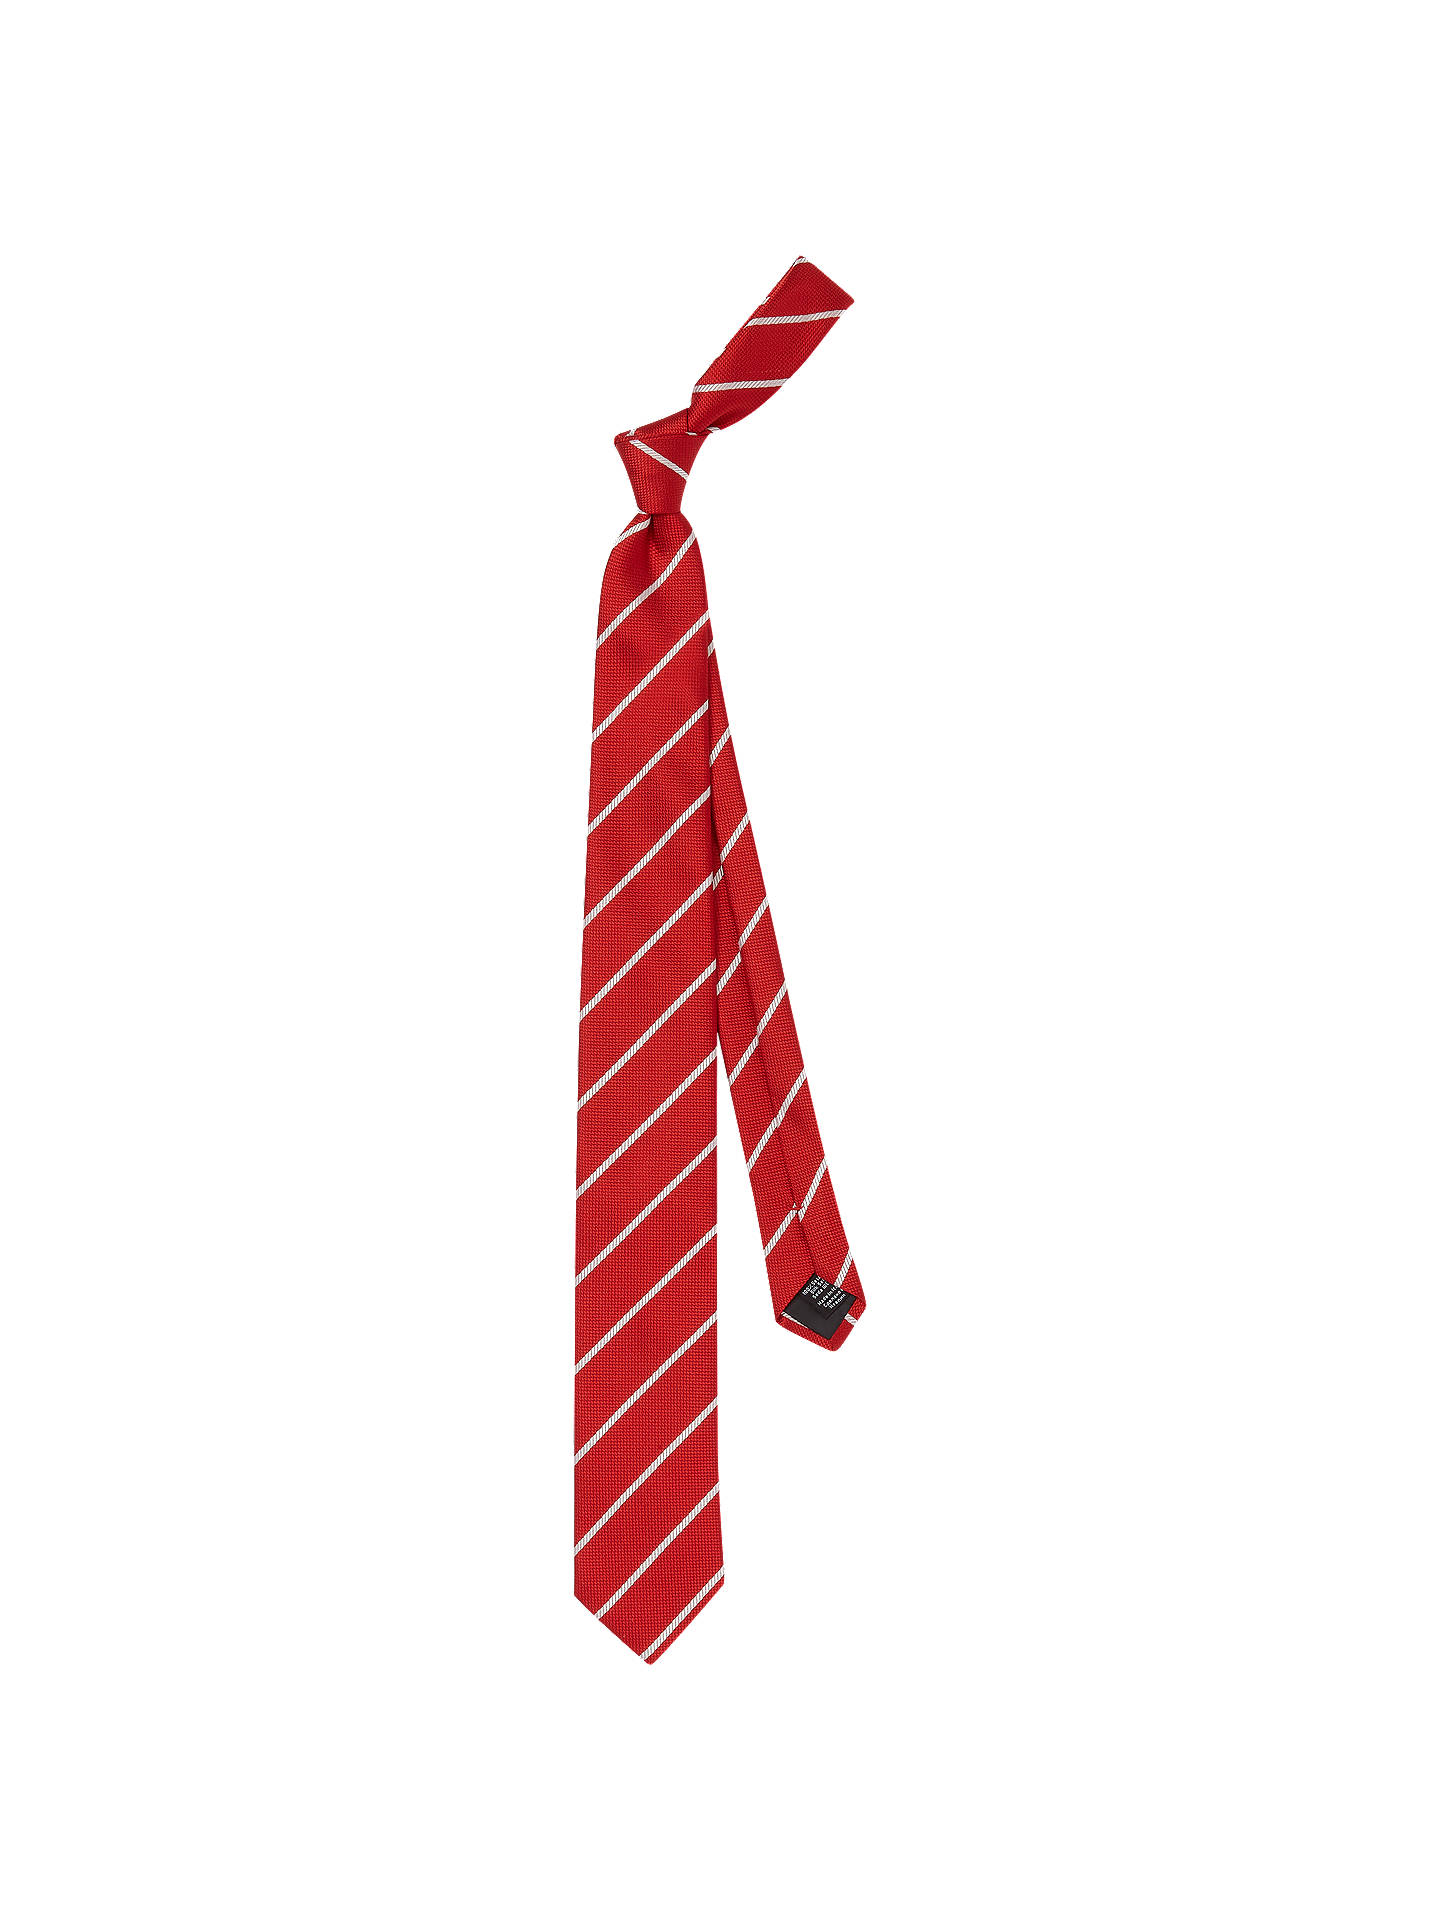 HUGO by Hugo Boss Diagonal Stripe Jacquard Silk Tie, Bright Red